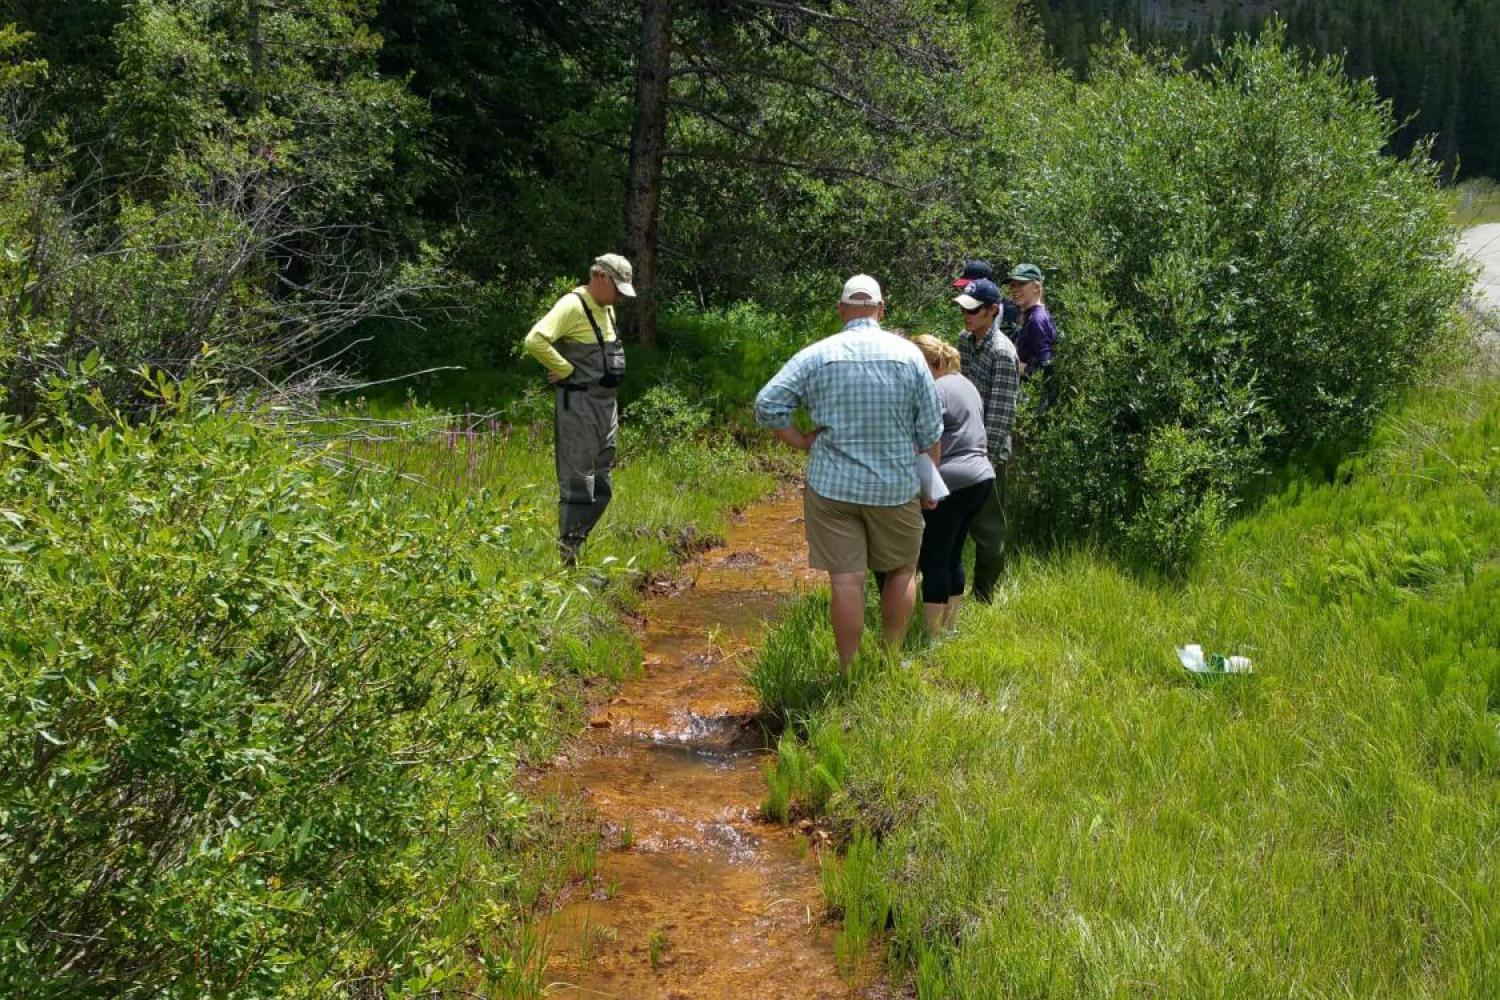 Students in the field doing environmental work